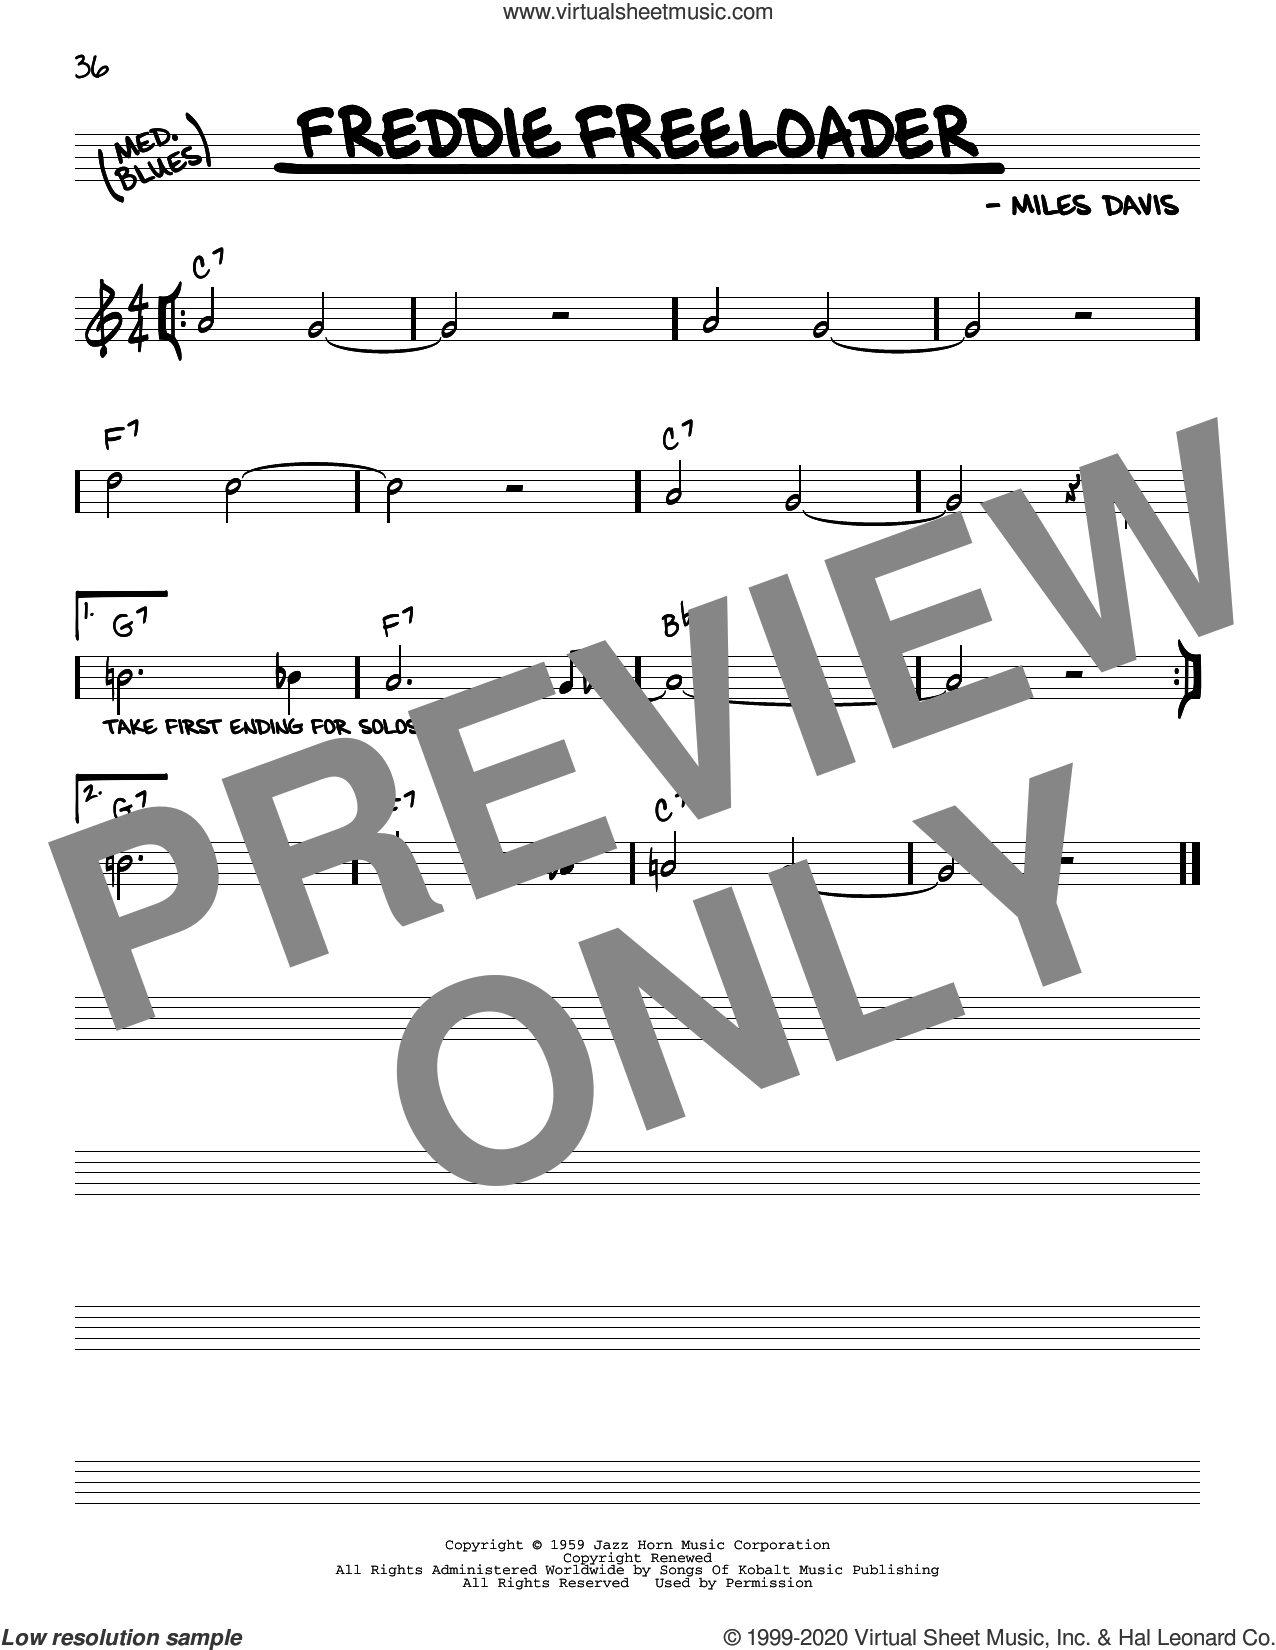 Freddie Freeloader sheet music for voice and other instruments (real book) by Miles Davis, intermediate skill level